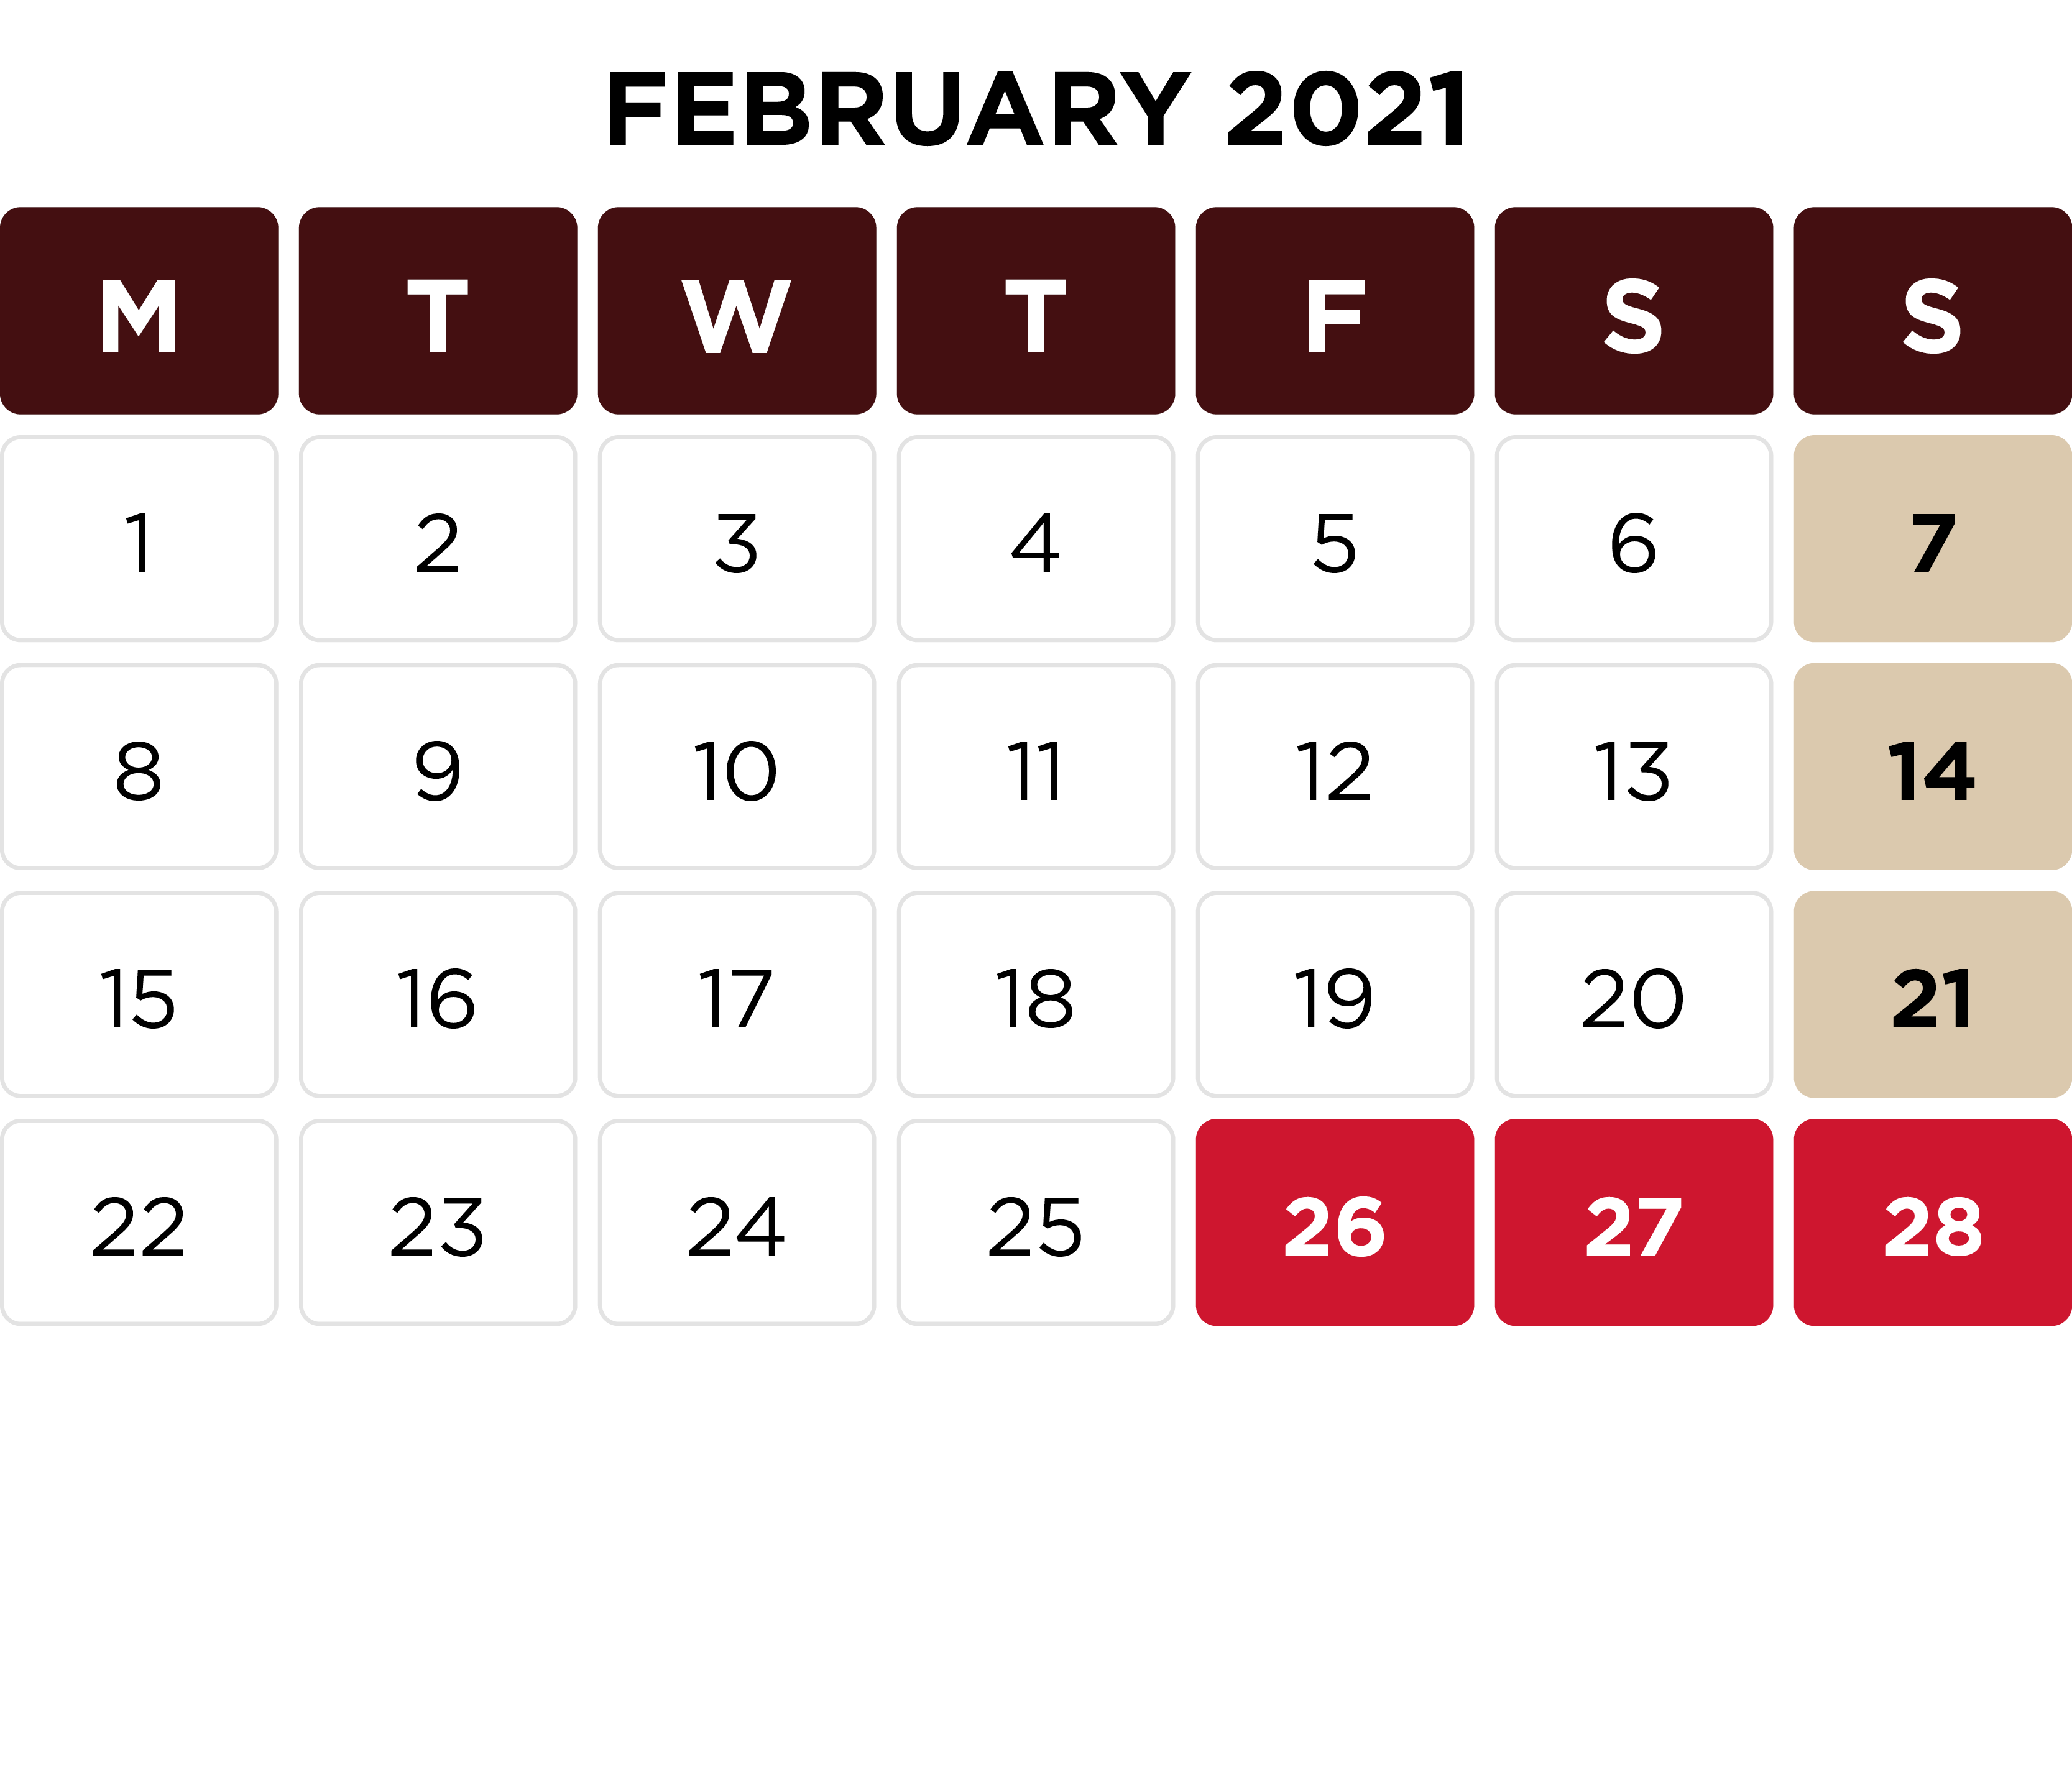 LNER1078 East Coast Upgrade 2020-21 Dates - Web Graphic Month Supply 800x688px - 04 February 2021.png